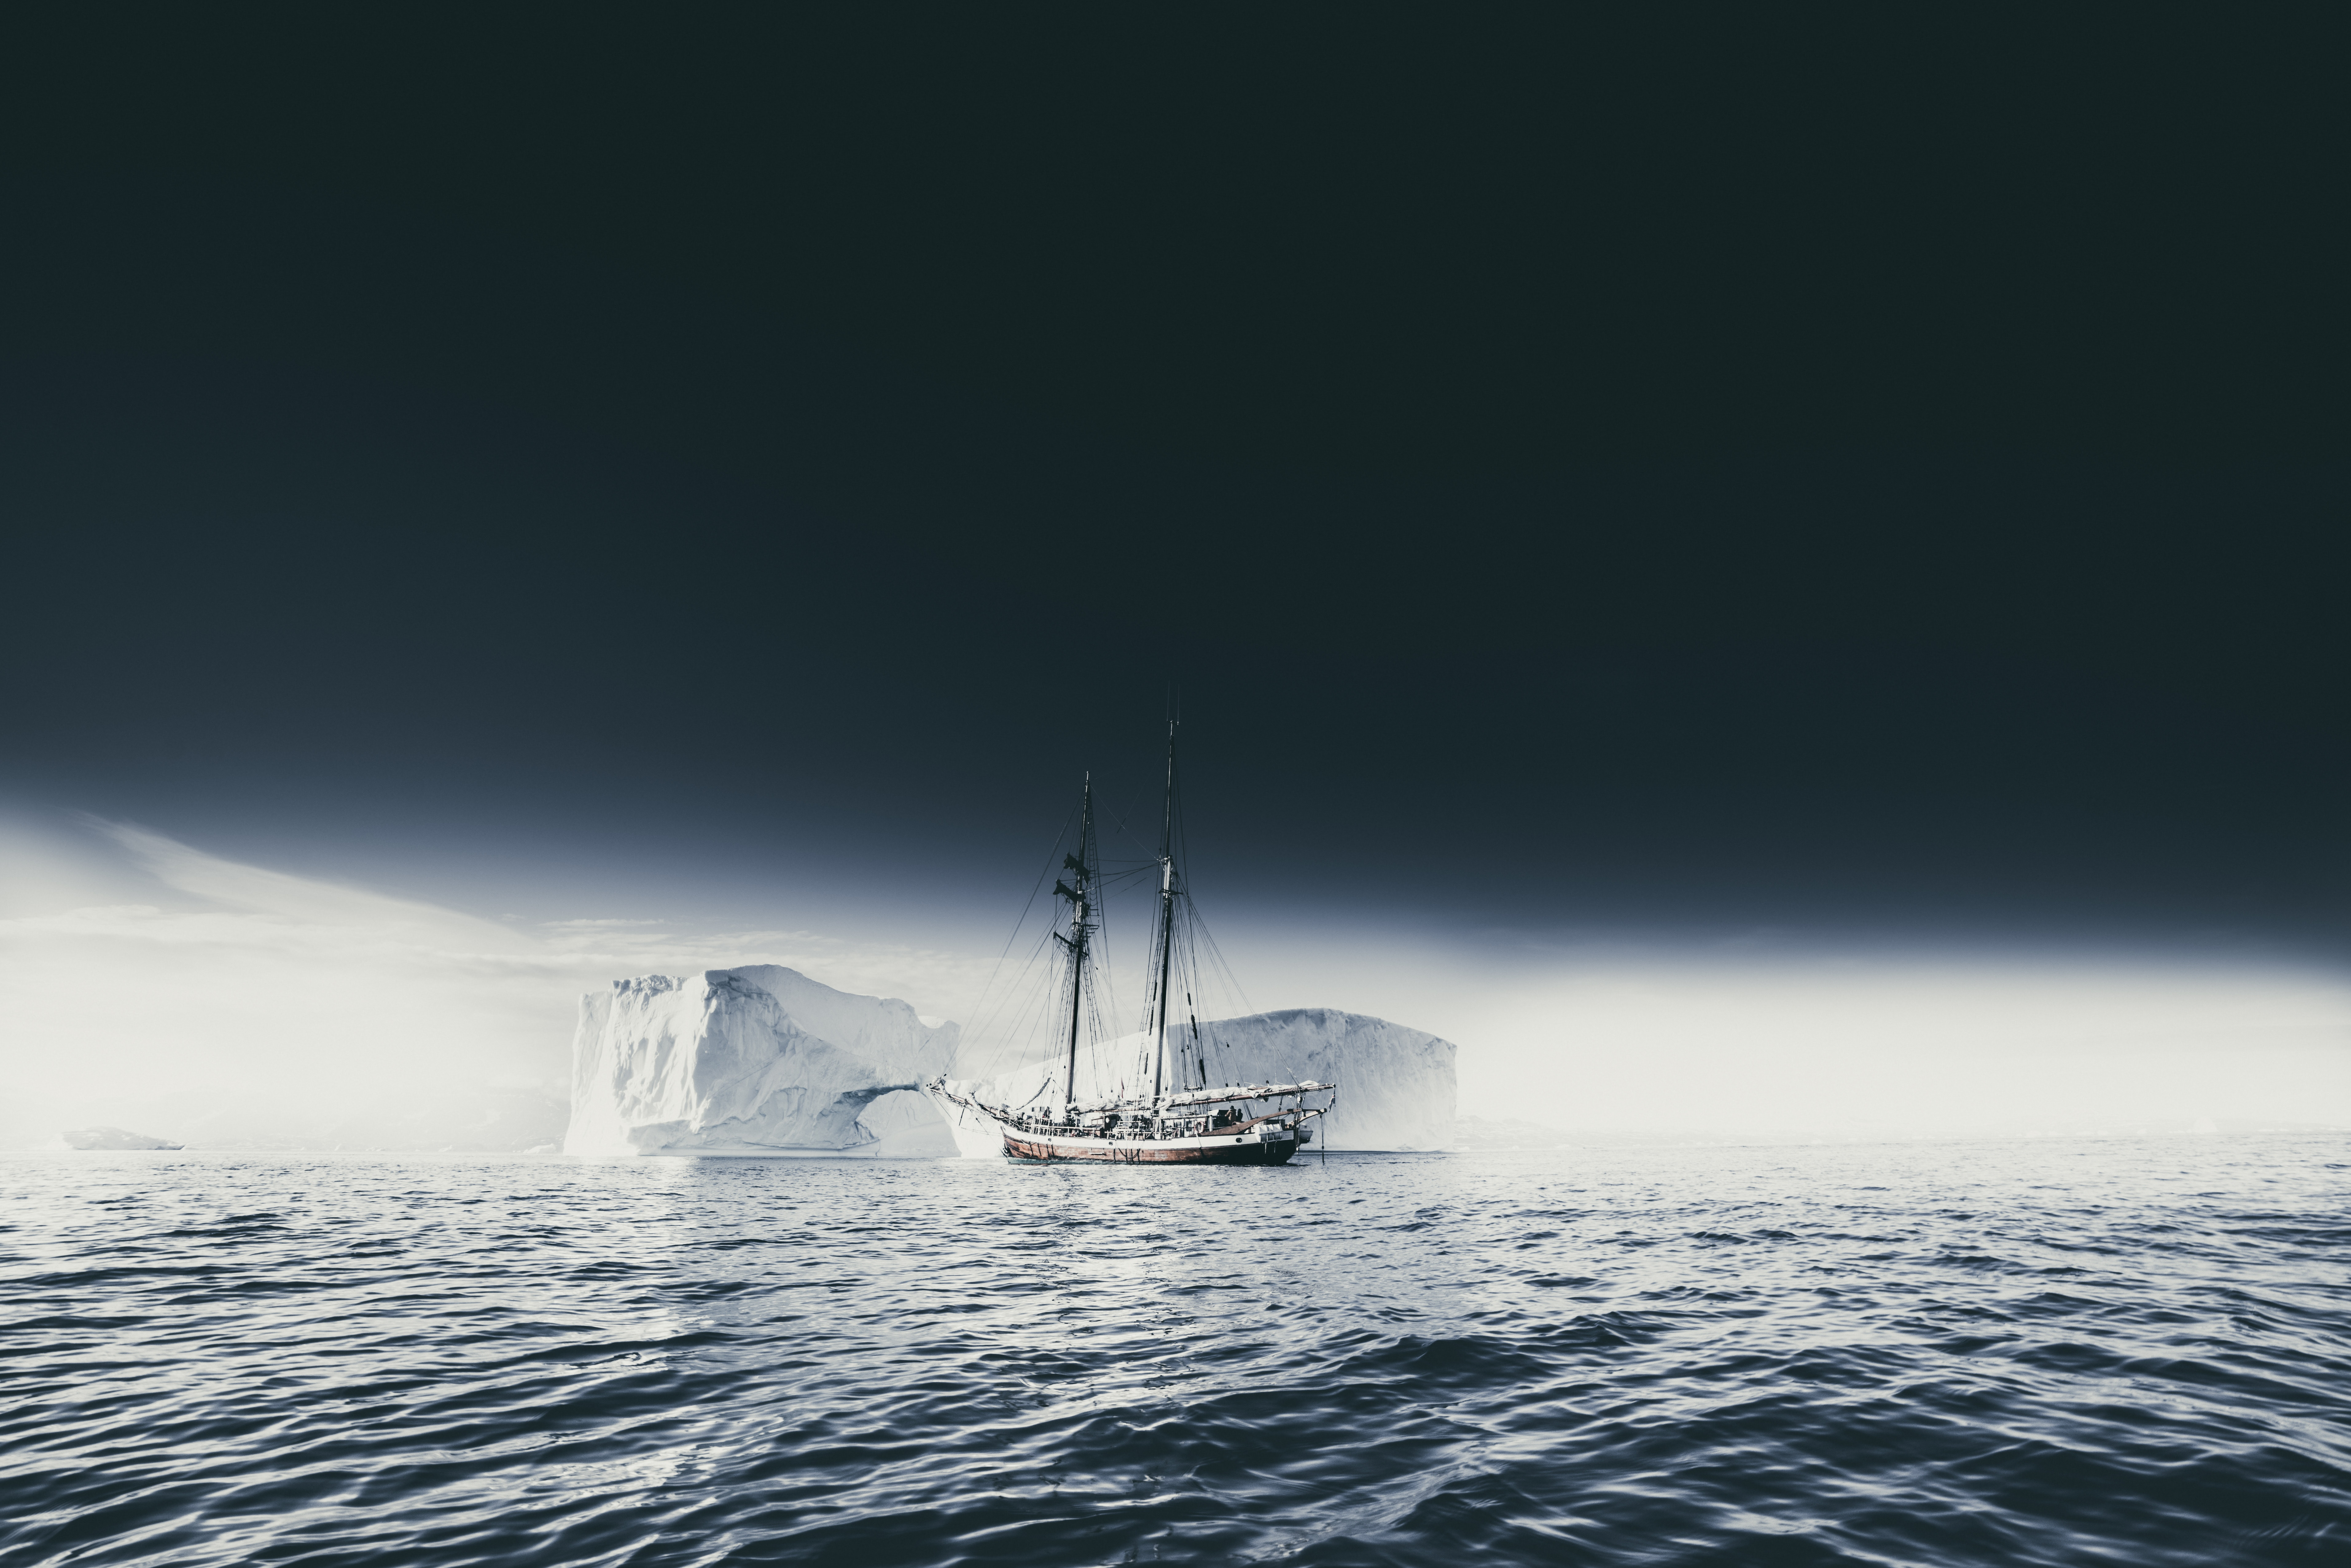 149055 download wallpaper Sky, Nature, Sea, Ice, Fog, Ship, Ice Floes, Iceberg screensavers and pictures for free